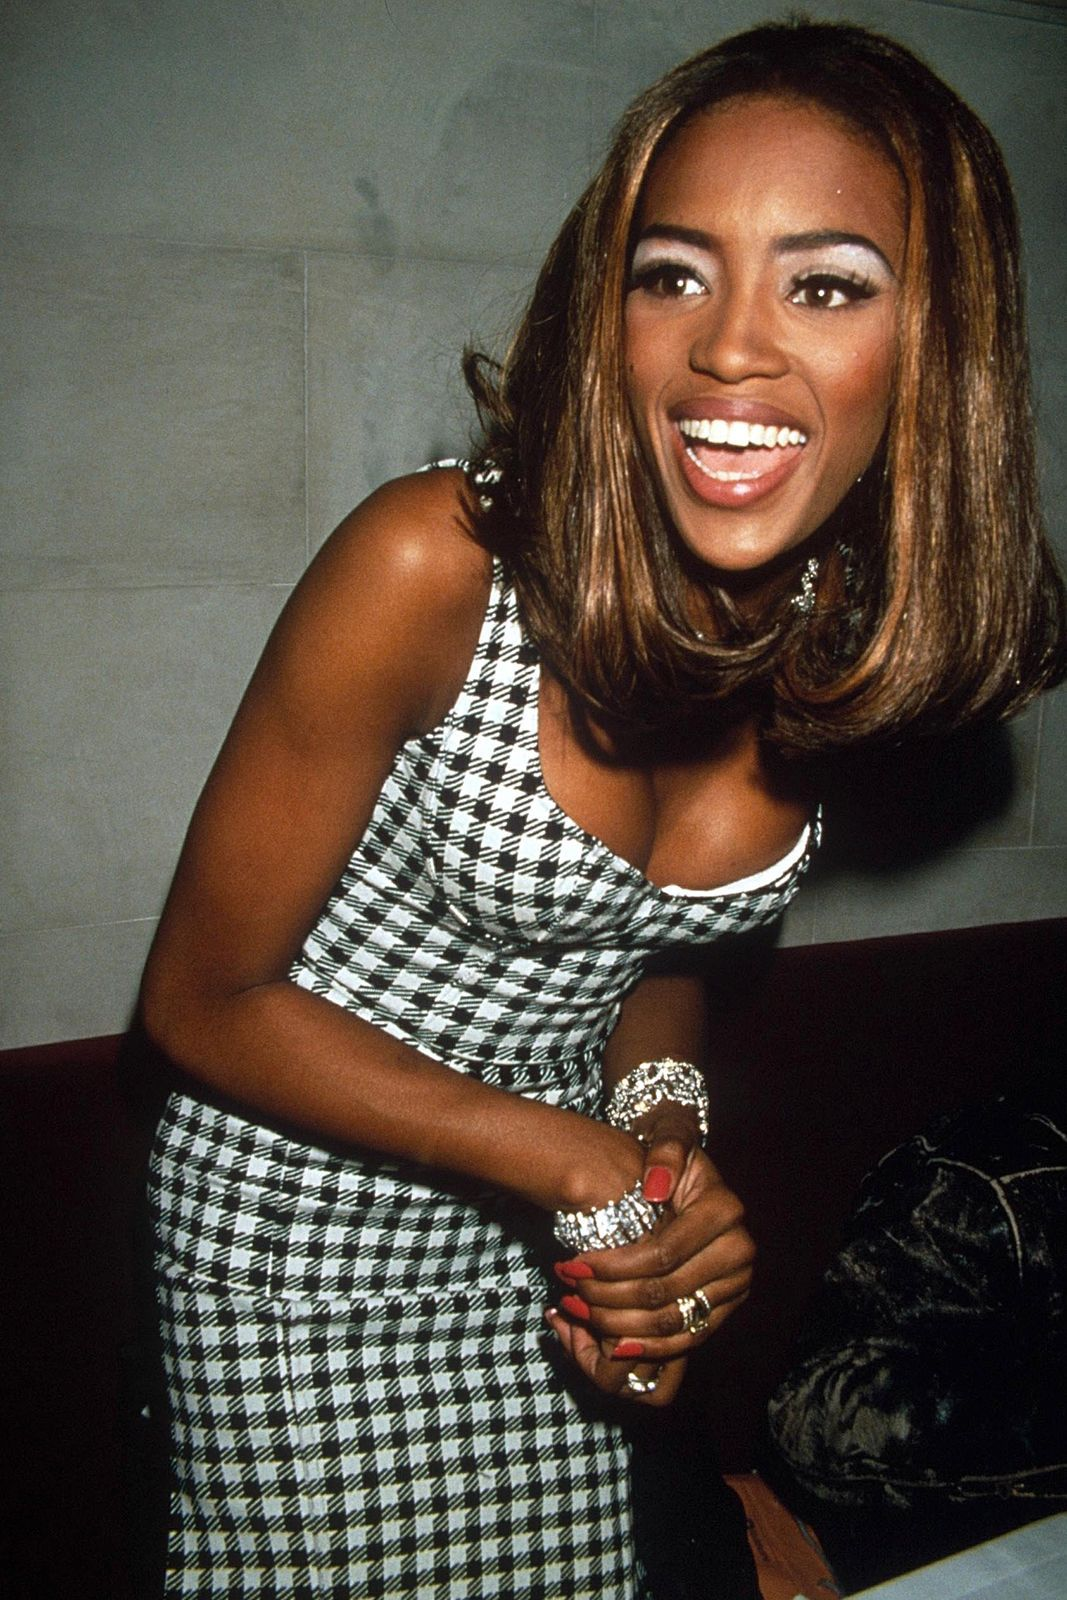 Before Model Off-Duty Style, There Was Naomi Campbell ...